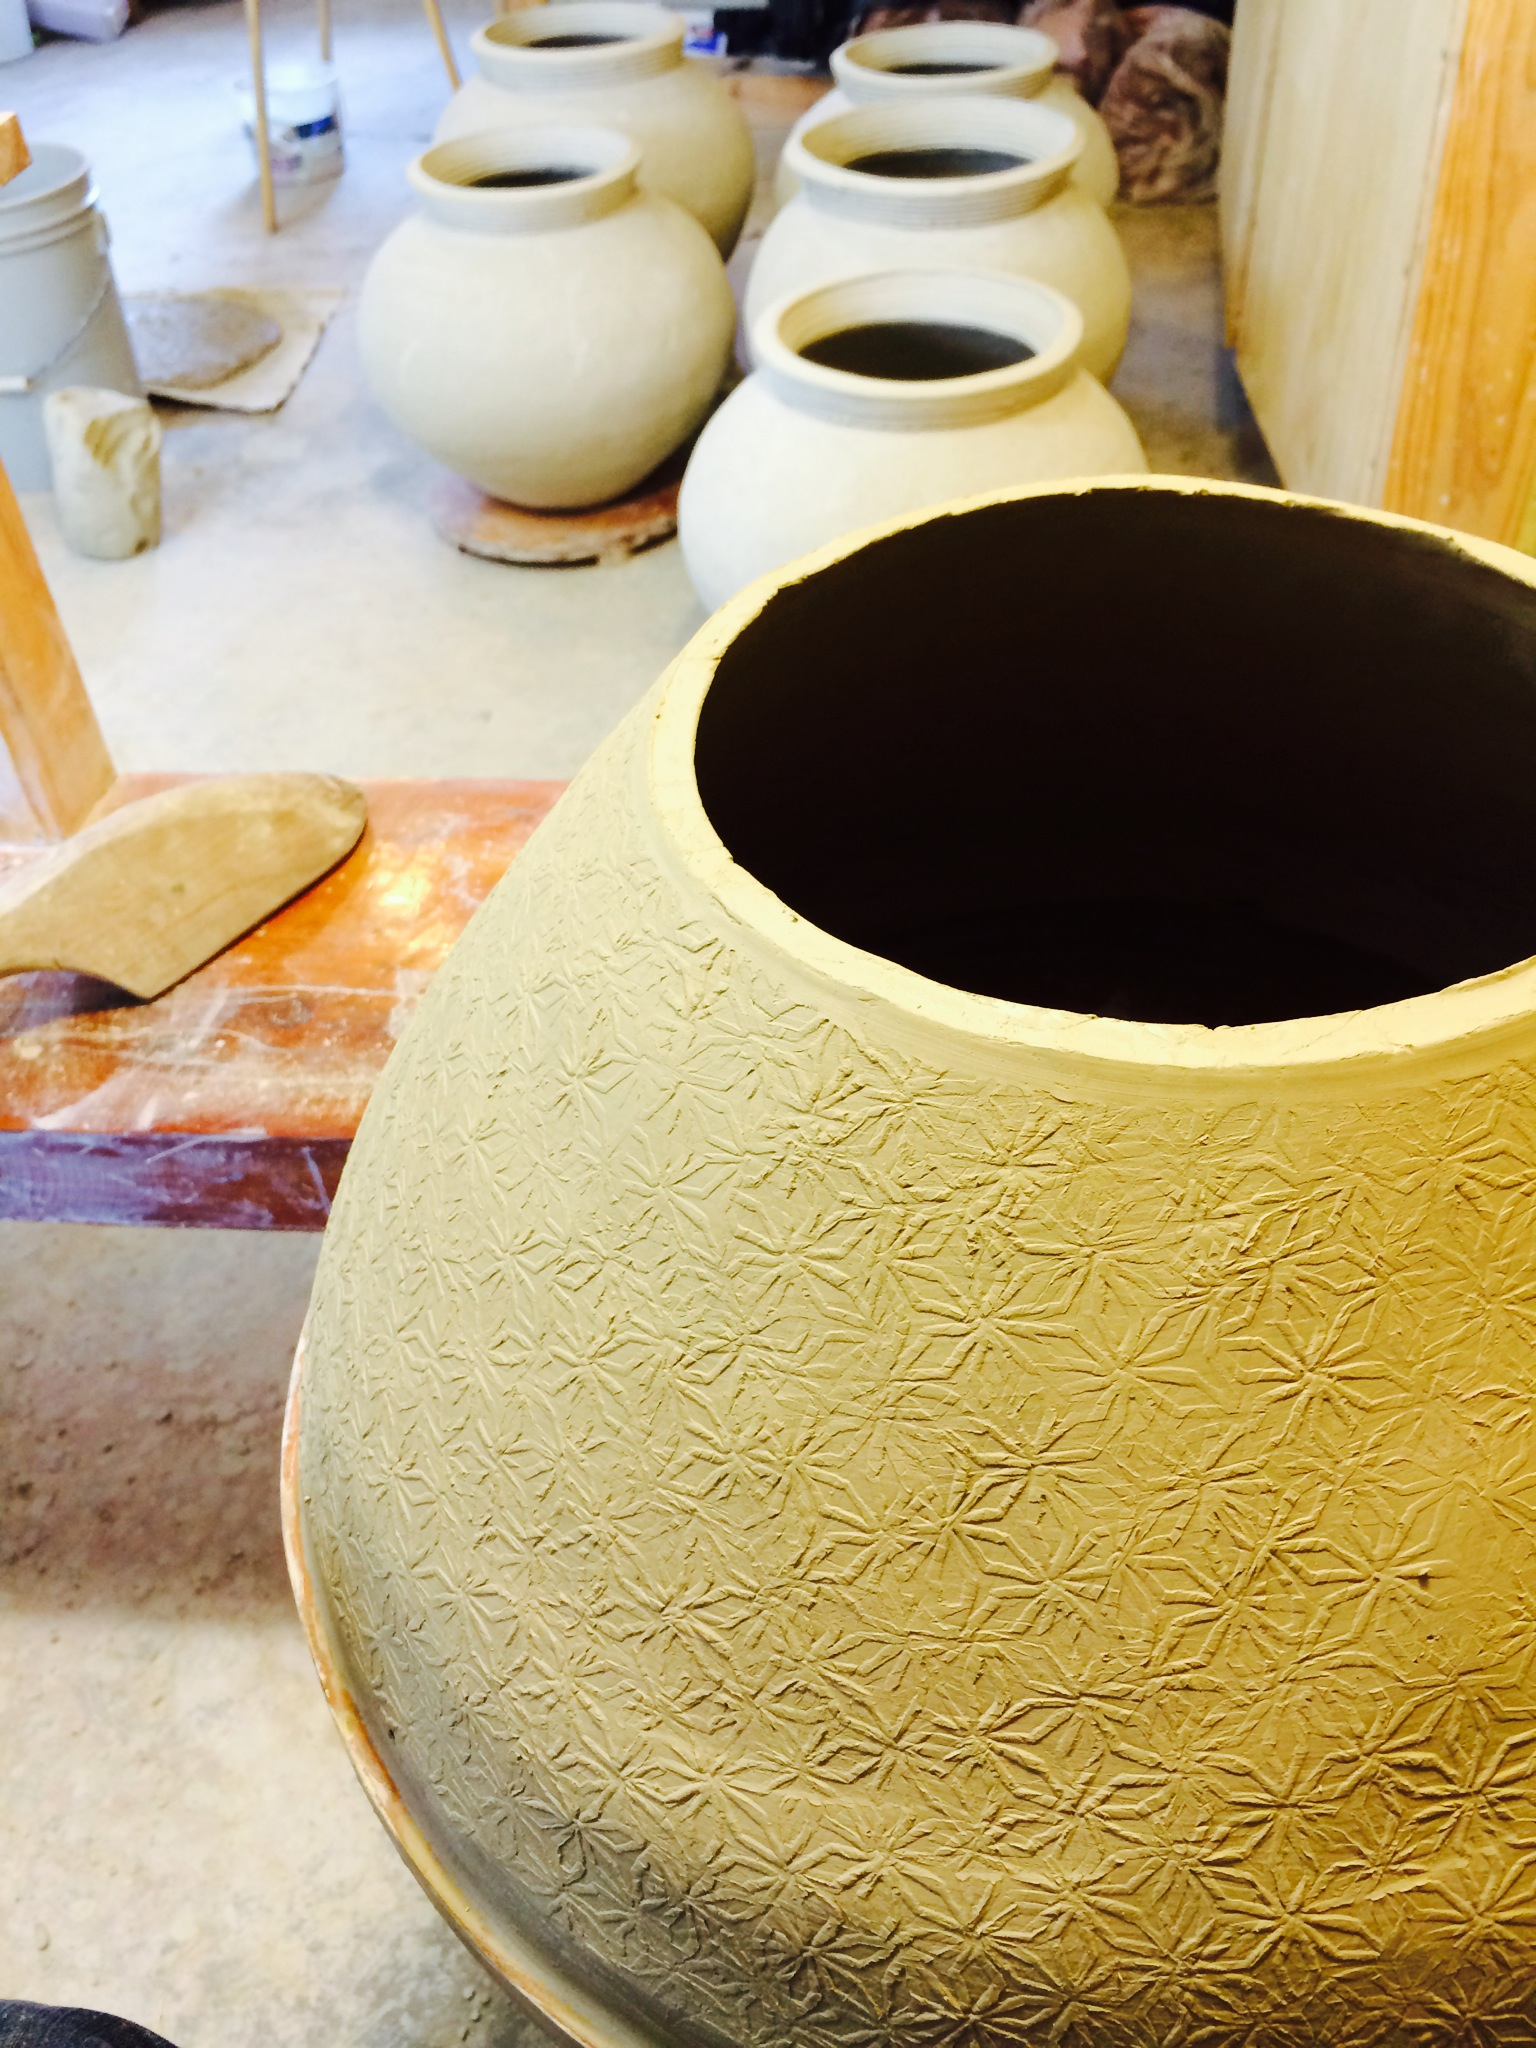 This is what it looks like when I begin.  I start by making the bottom half of the jar first, beginning in the middle of the form. I first build a large cone shaped form with coils. Then the profile is shaped and struck with a textured paddle to further refine the profile and make the walls thinner and more dense.